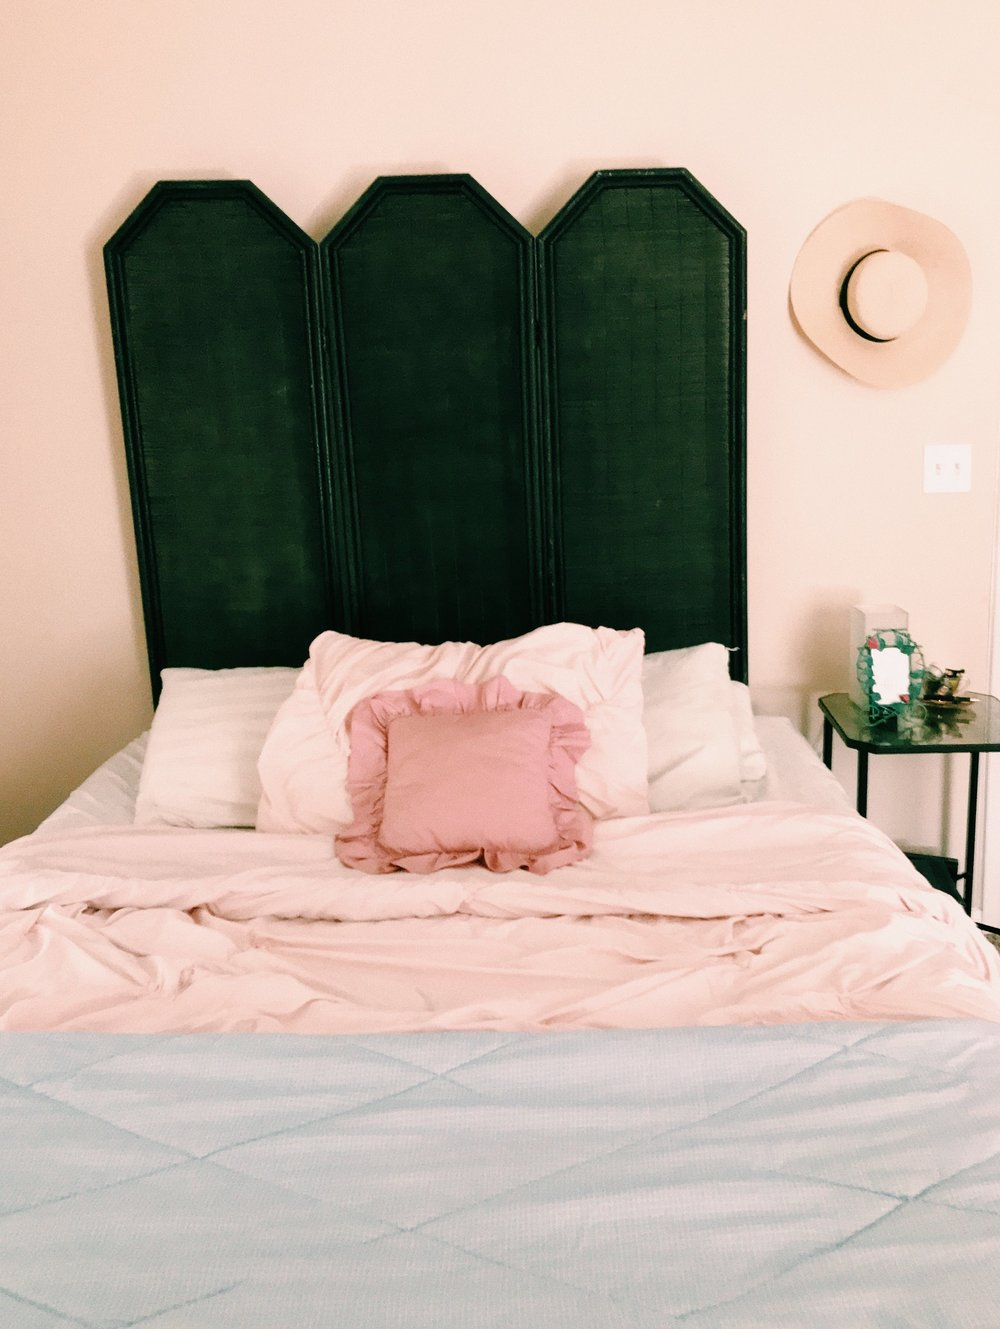 Three Heel Clicks - Daily Dose - DIY Layered Bedding and Curtains for Master Bedroom (3).jpg